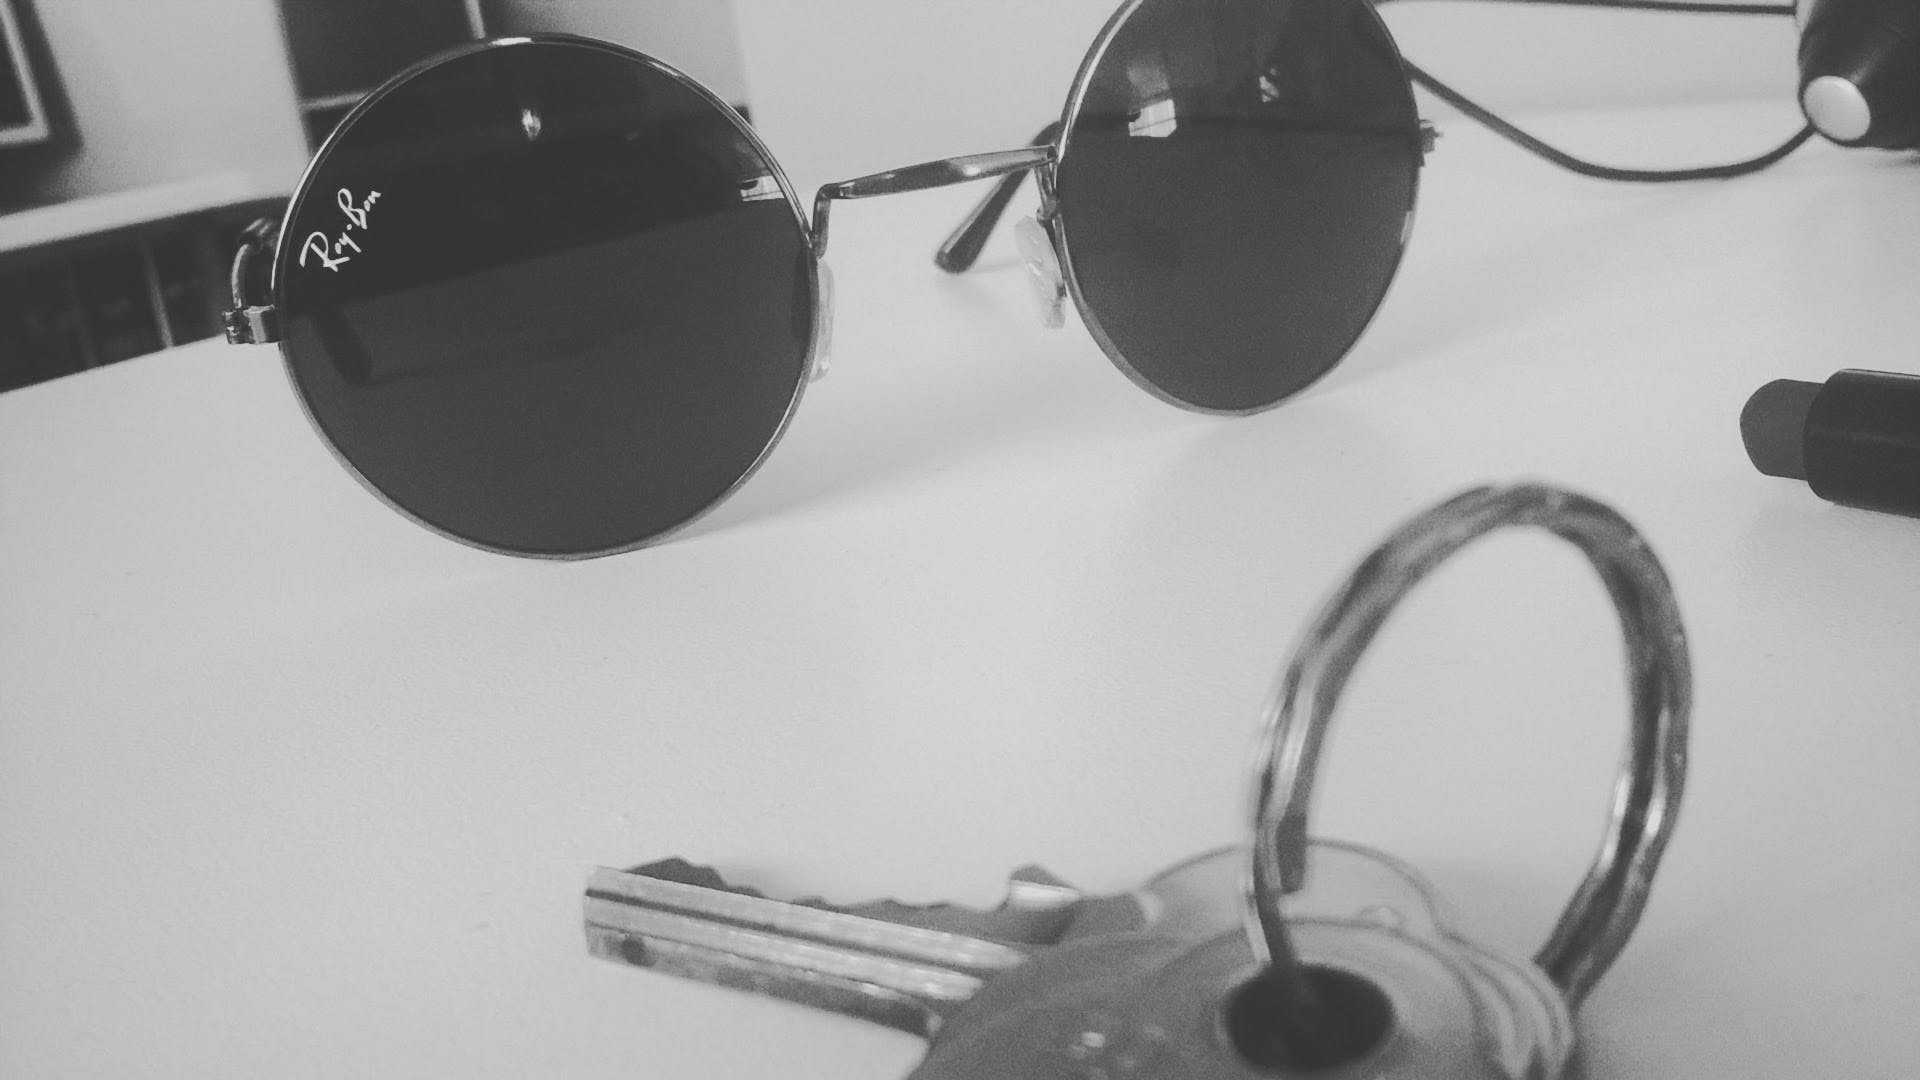 Ray Ban Sunglasses on the Table